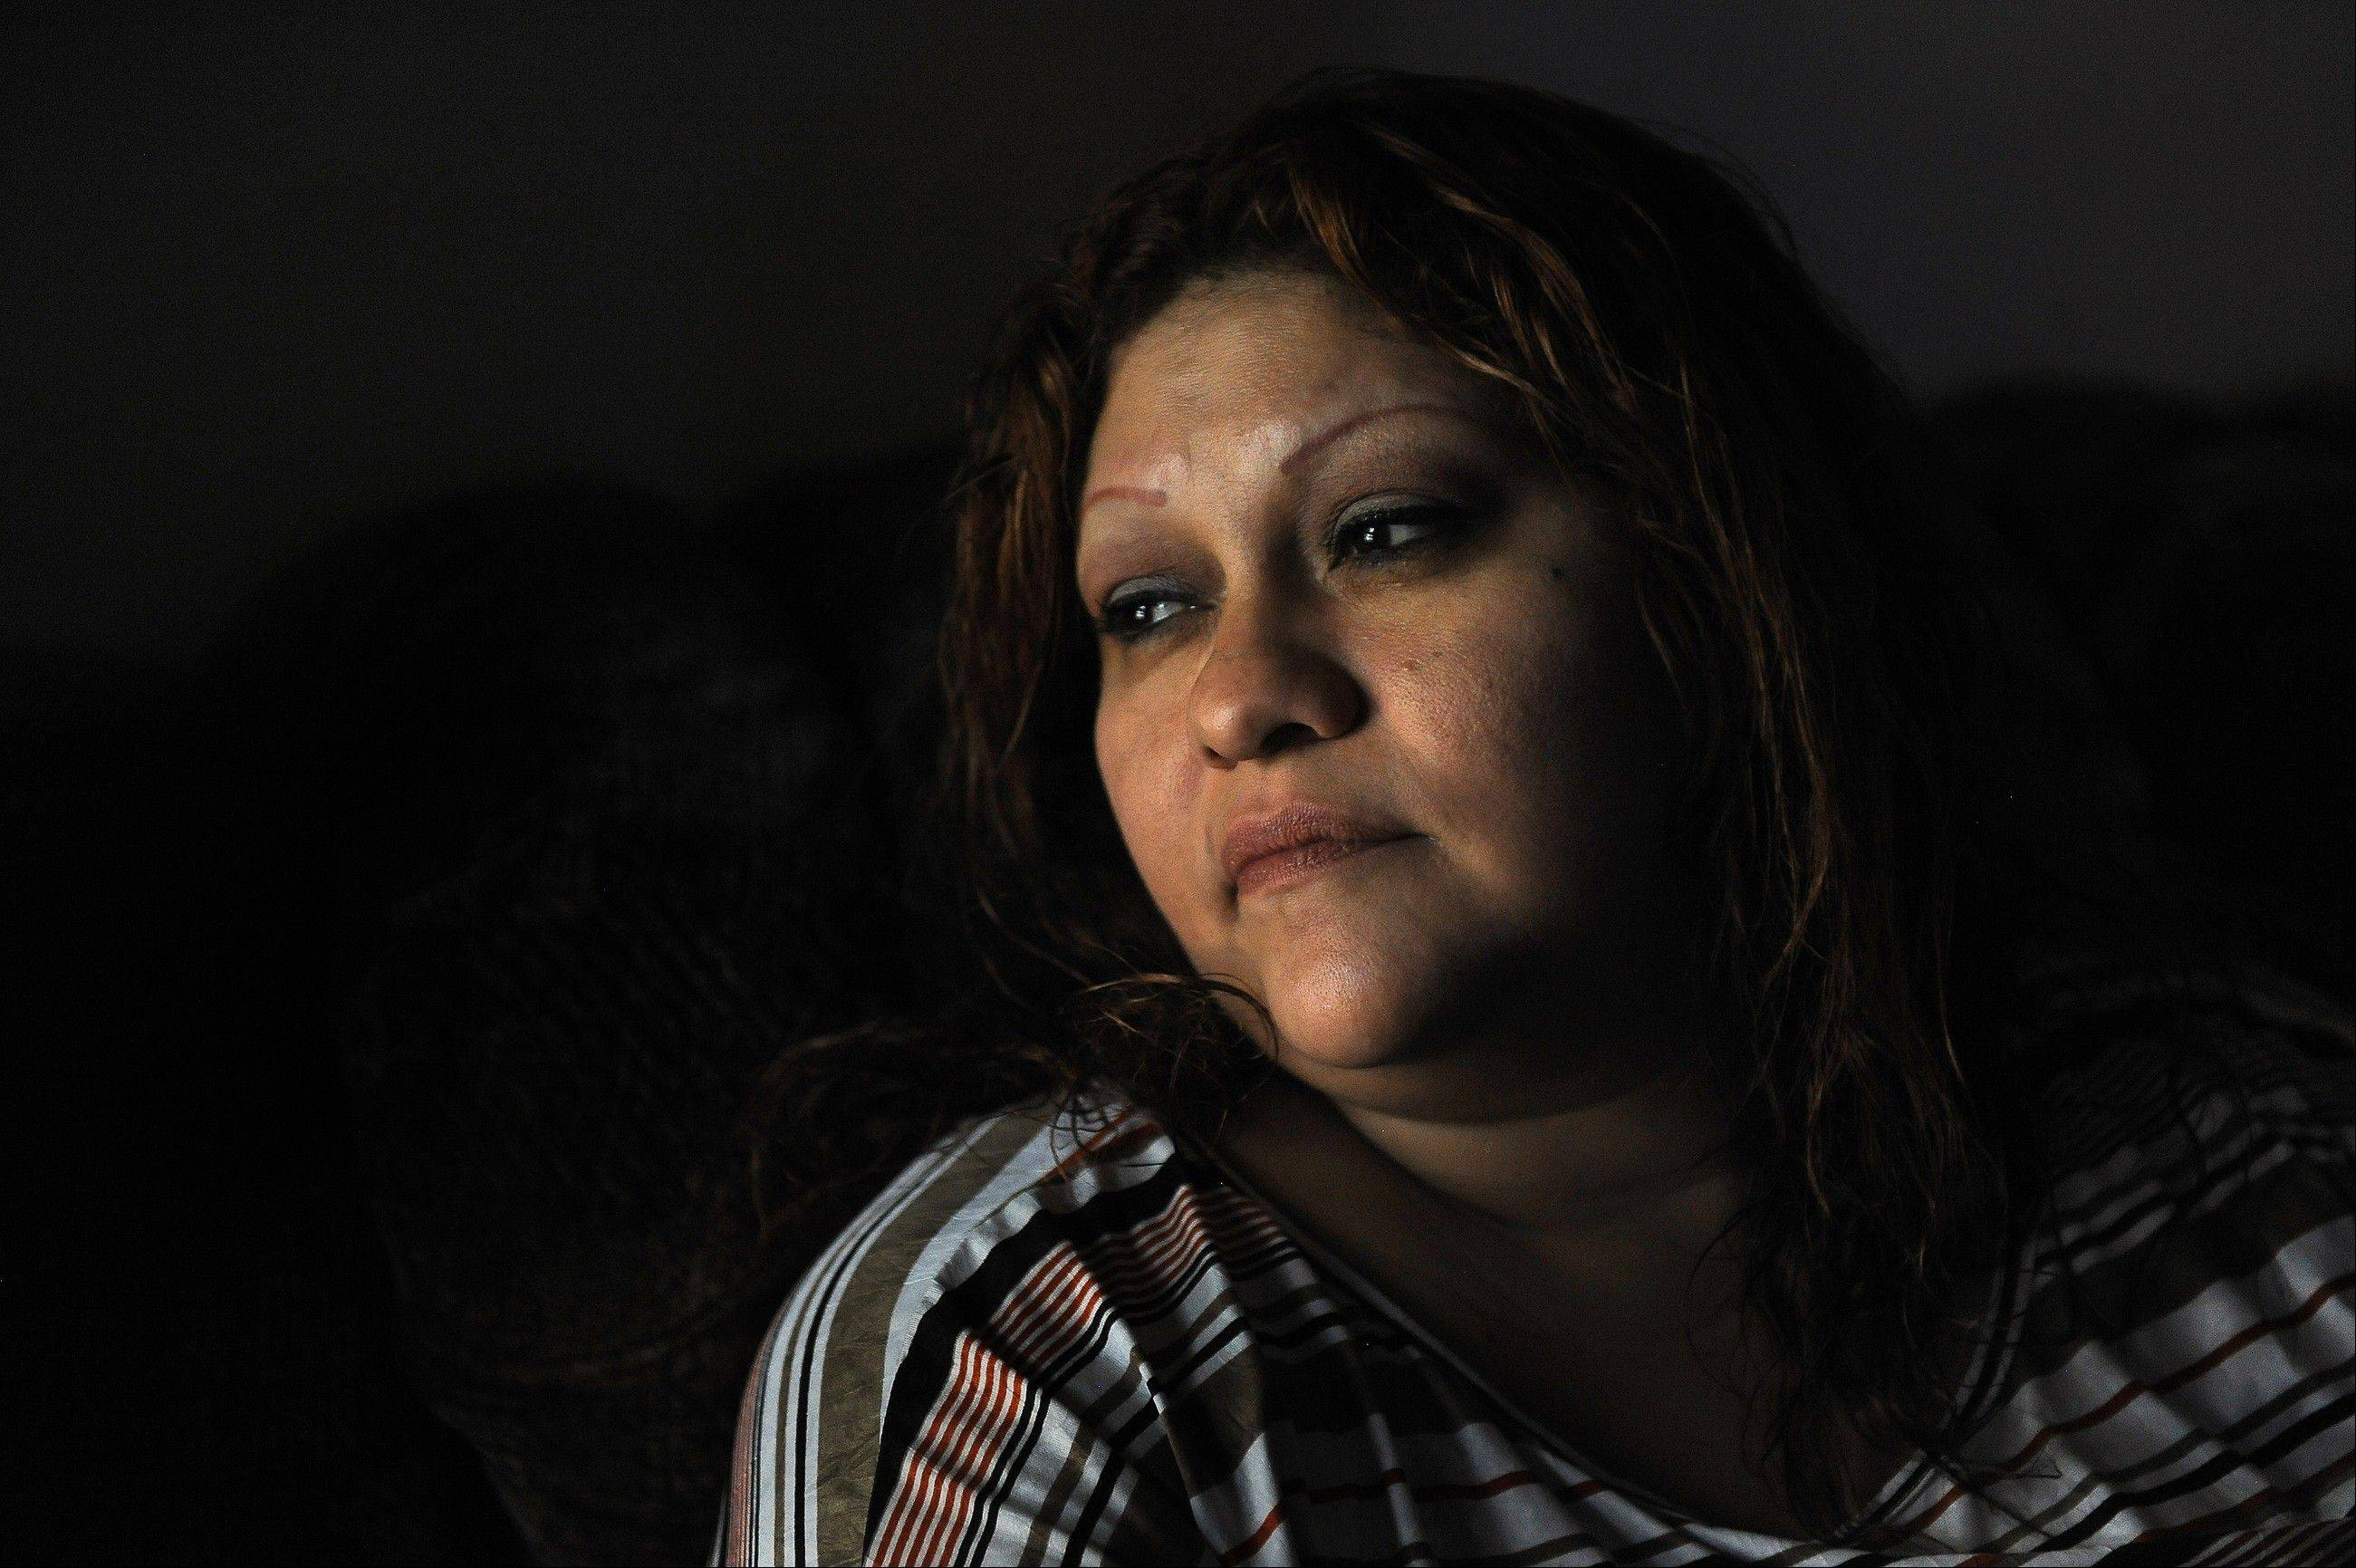 Blanca Salas of McAllen, Texas, is fighting diabetes as she tries to feed her family on $430 in monthly benefits through the Supplemental Nutrition Assistance Program, formerly known as food stamps.